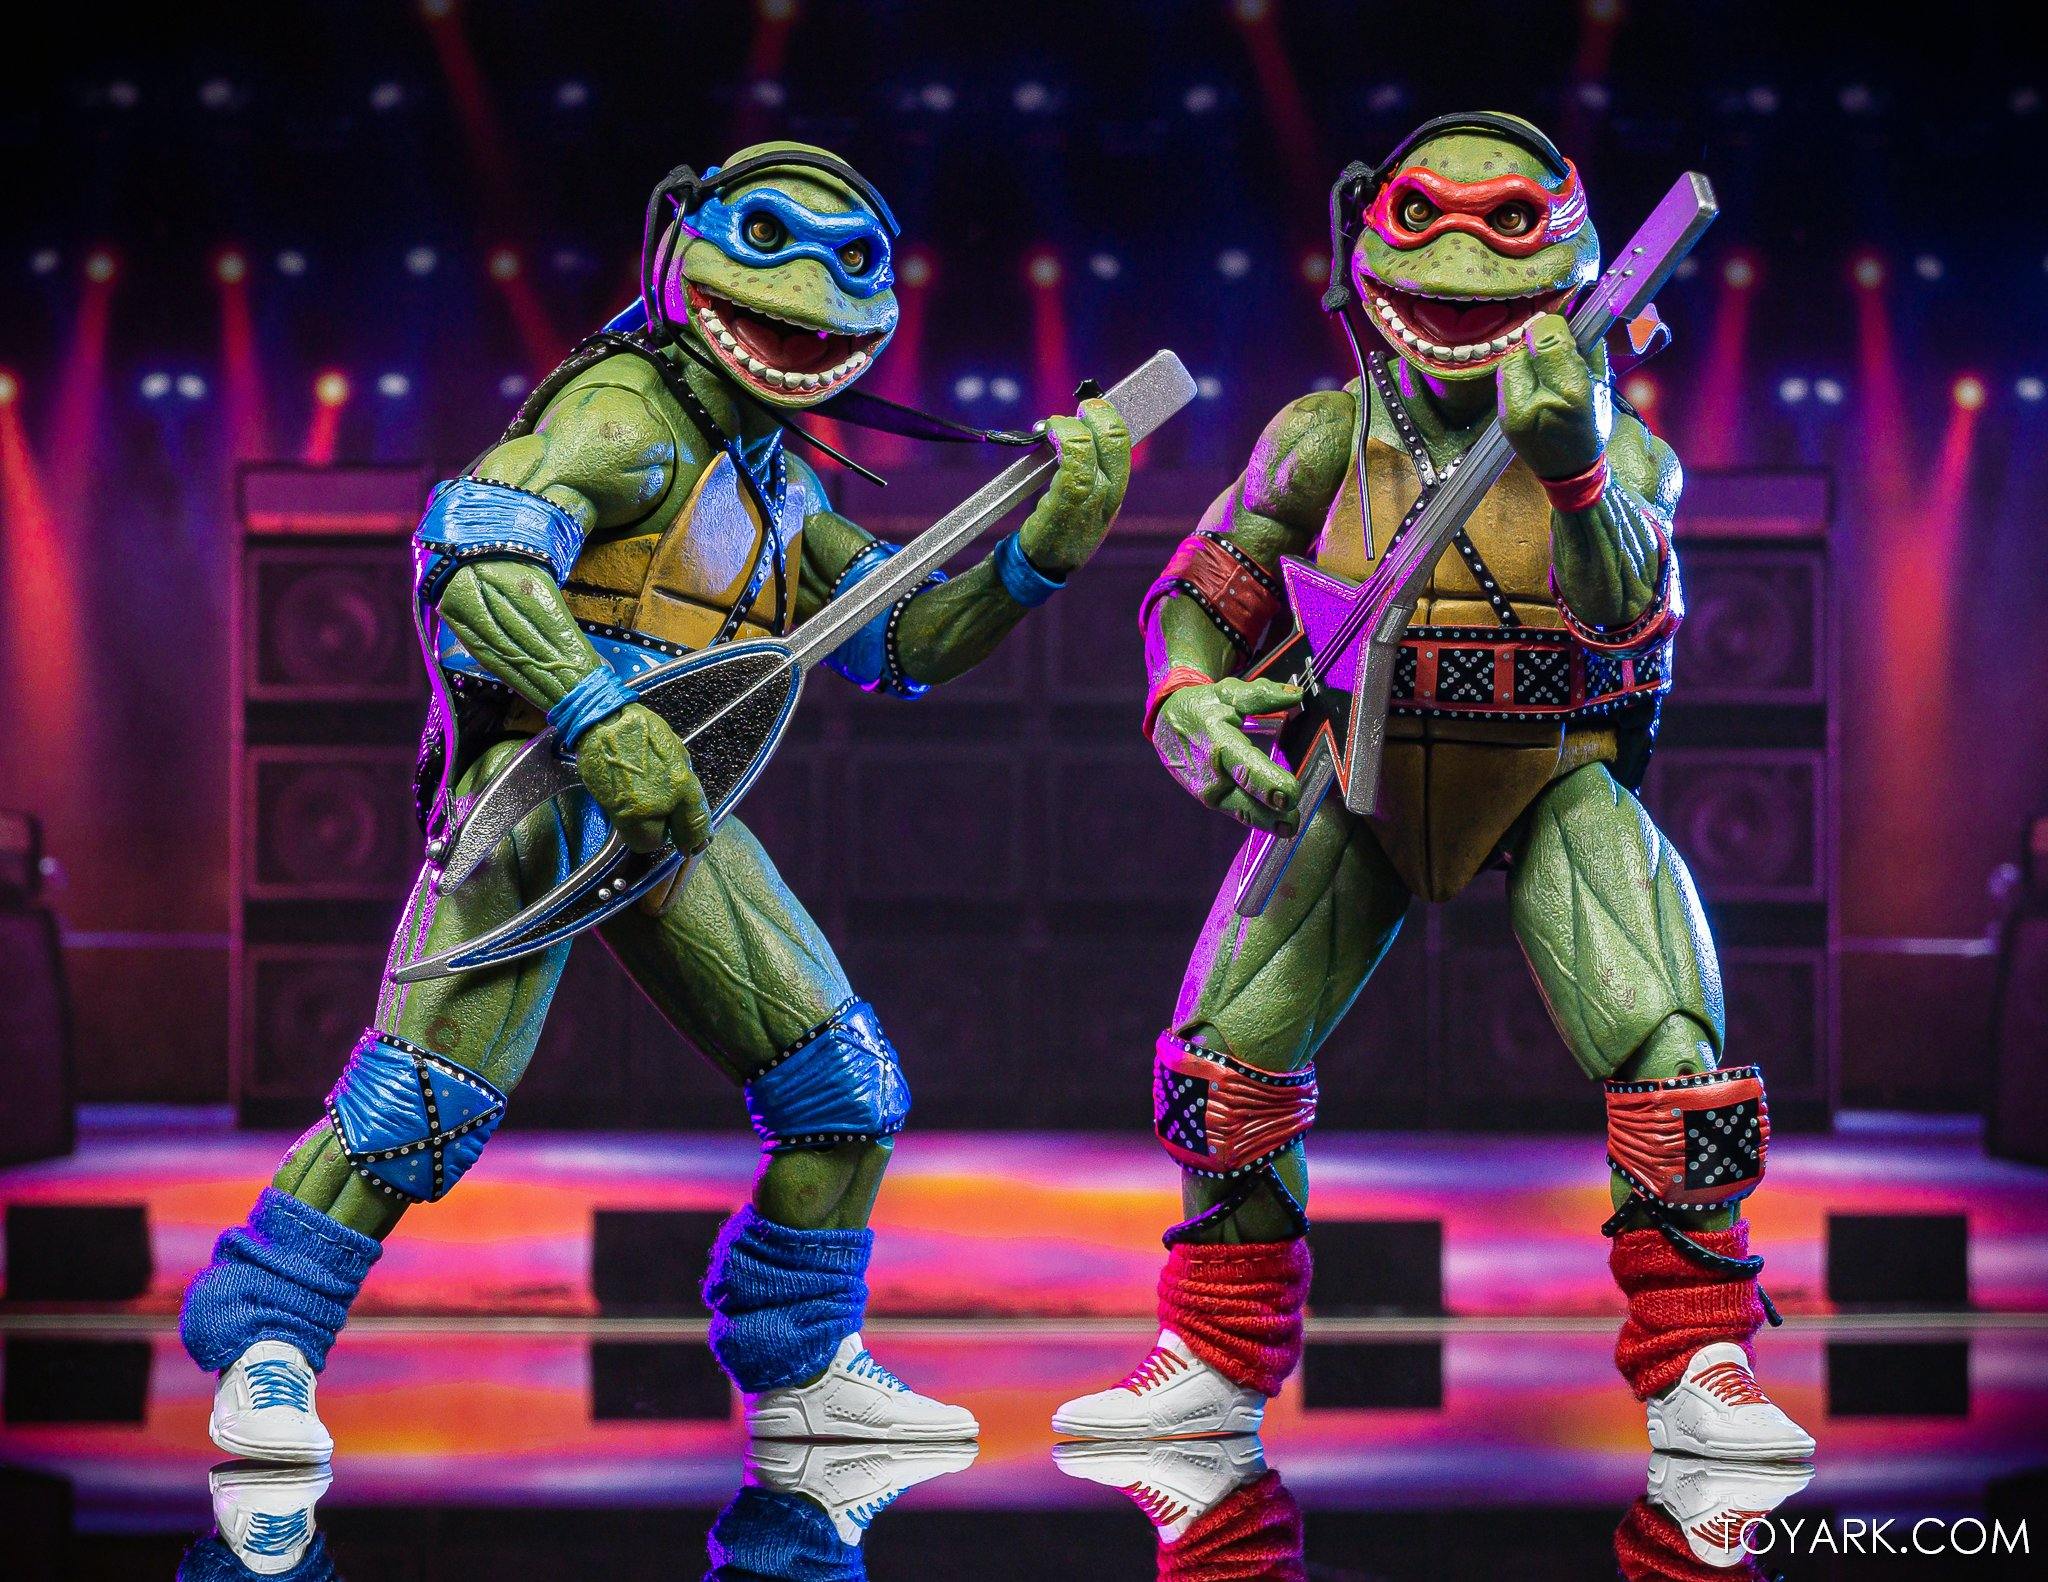 https://news.toyark.com/wp-content/uploads/sites/4/2020/07/SDCC-2020-TMNT-Musical-Mutagen-Tour-050.jpg